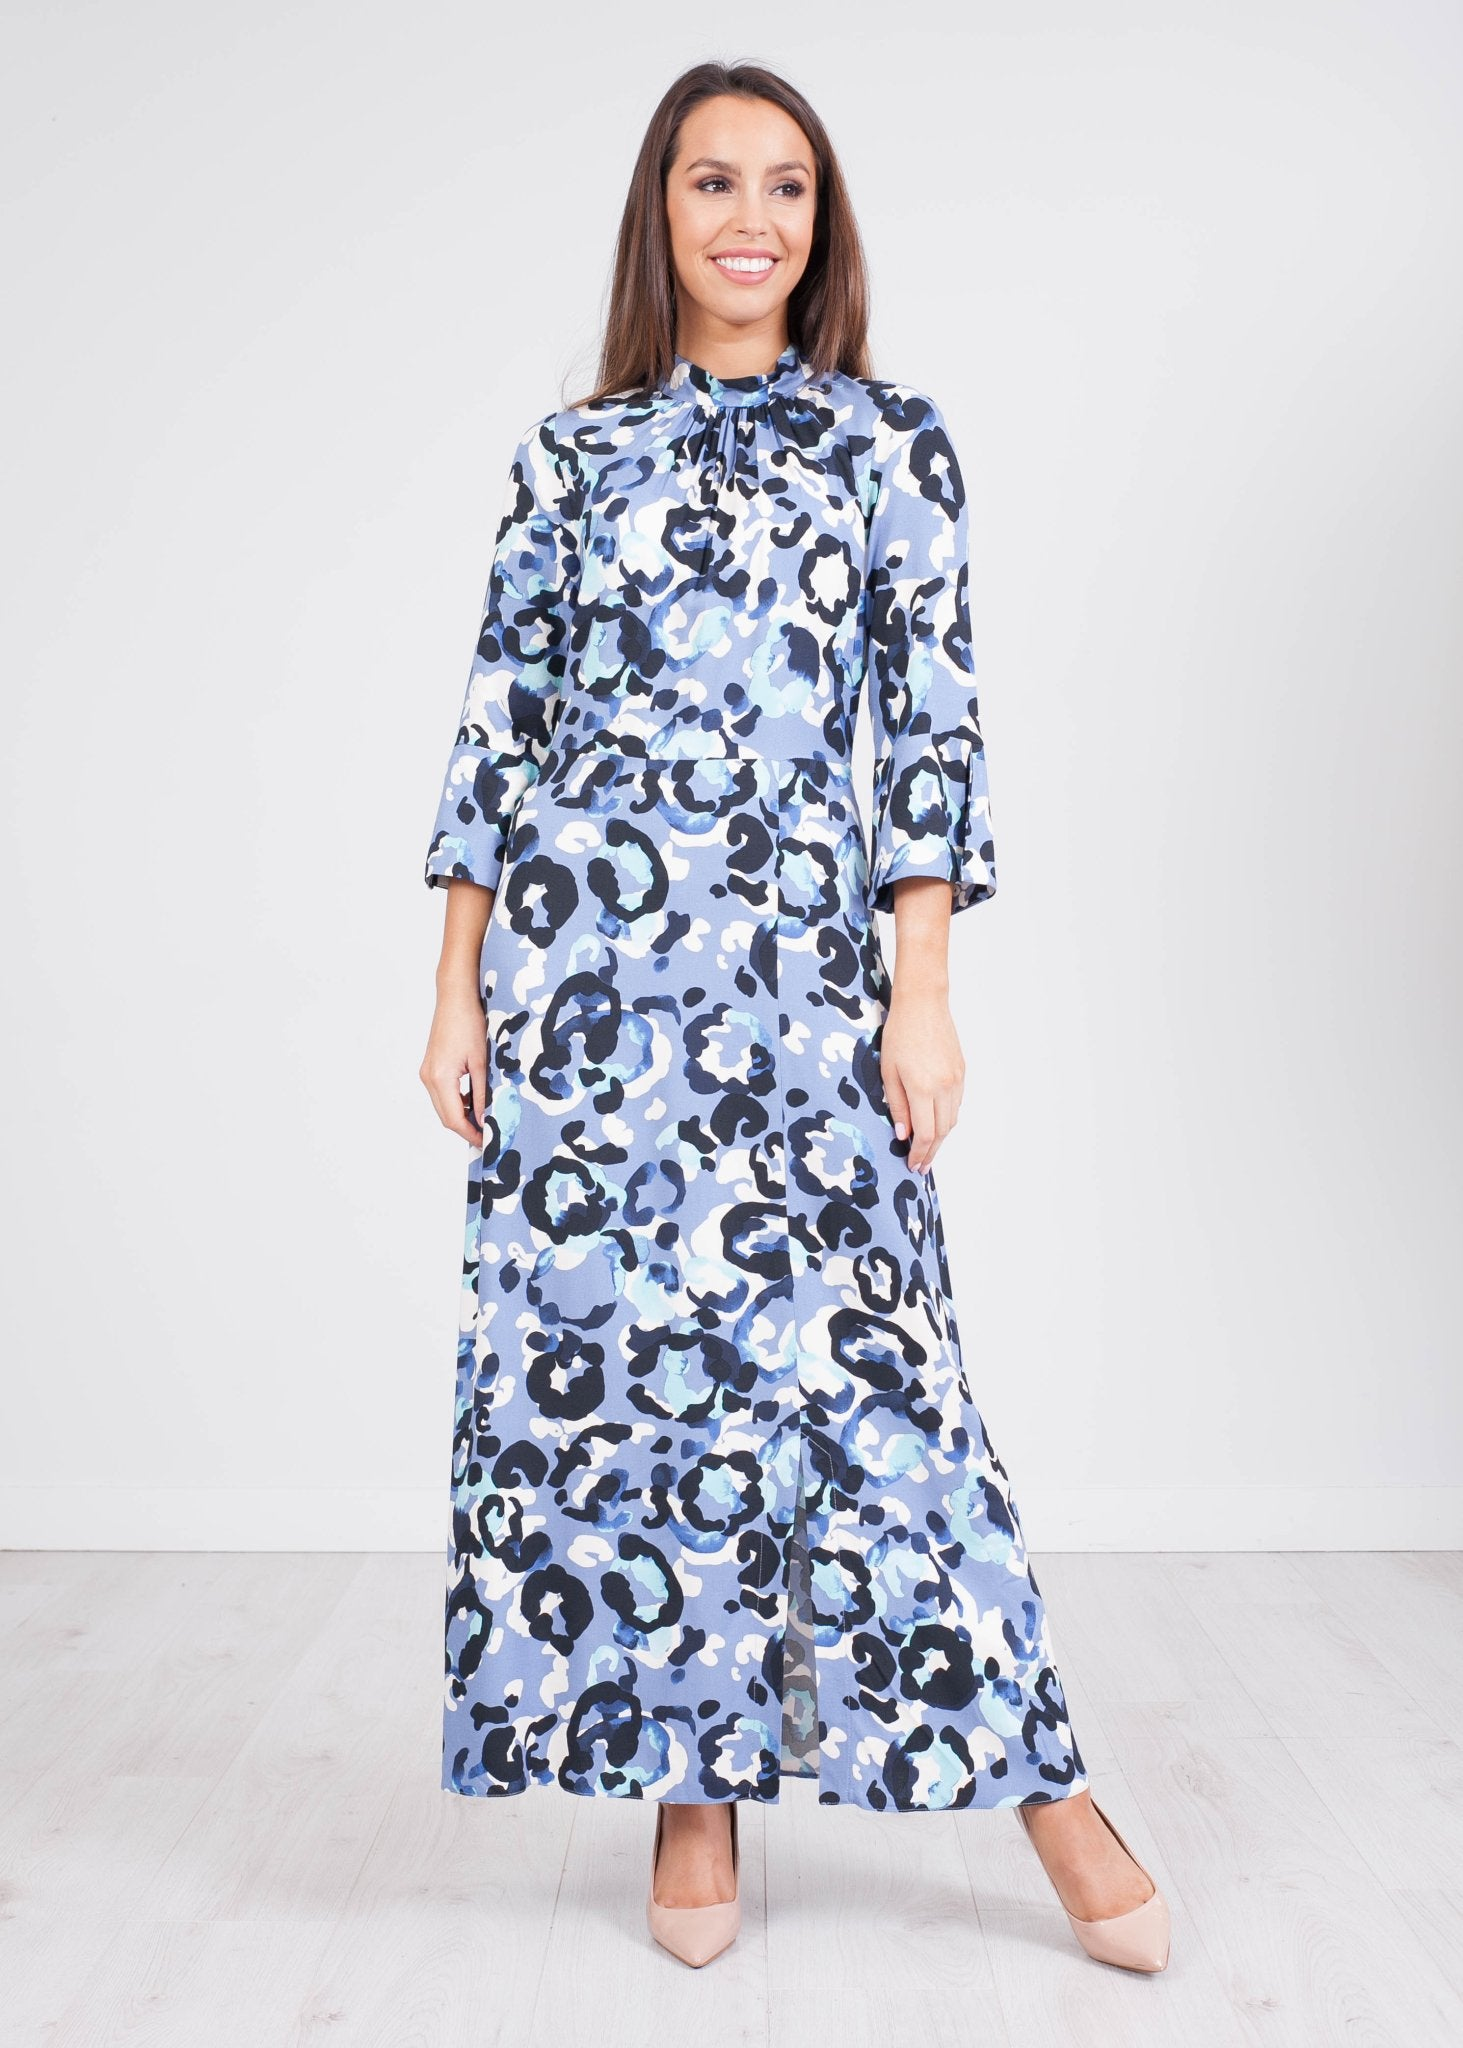 Cara Blue Printed A-Line Midi Dress - The Walk in Wardrobe